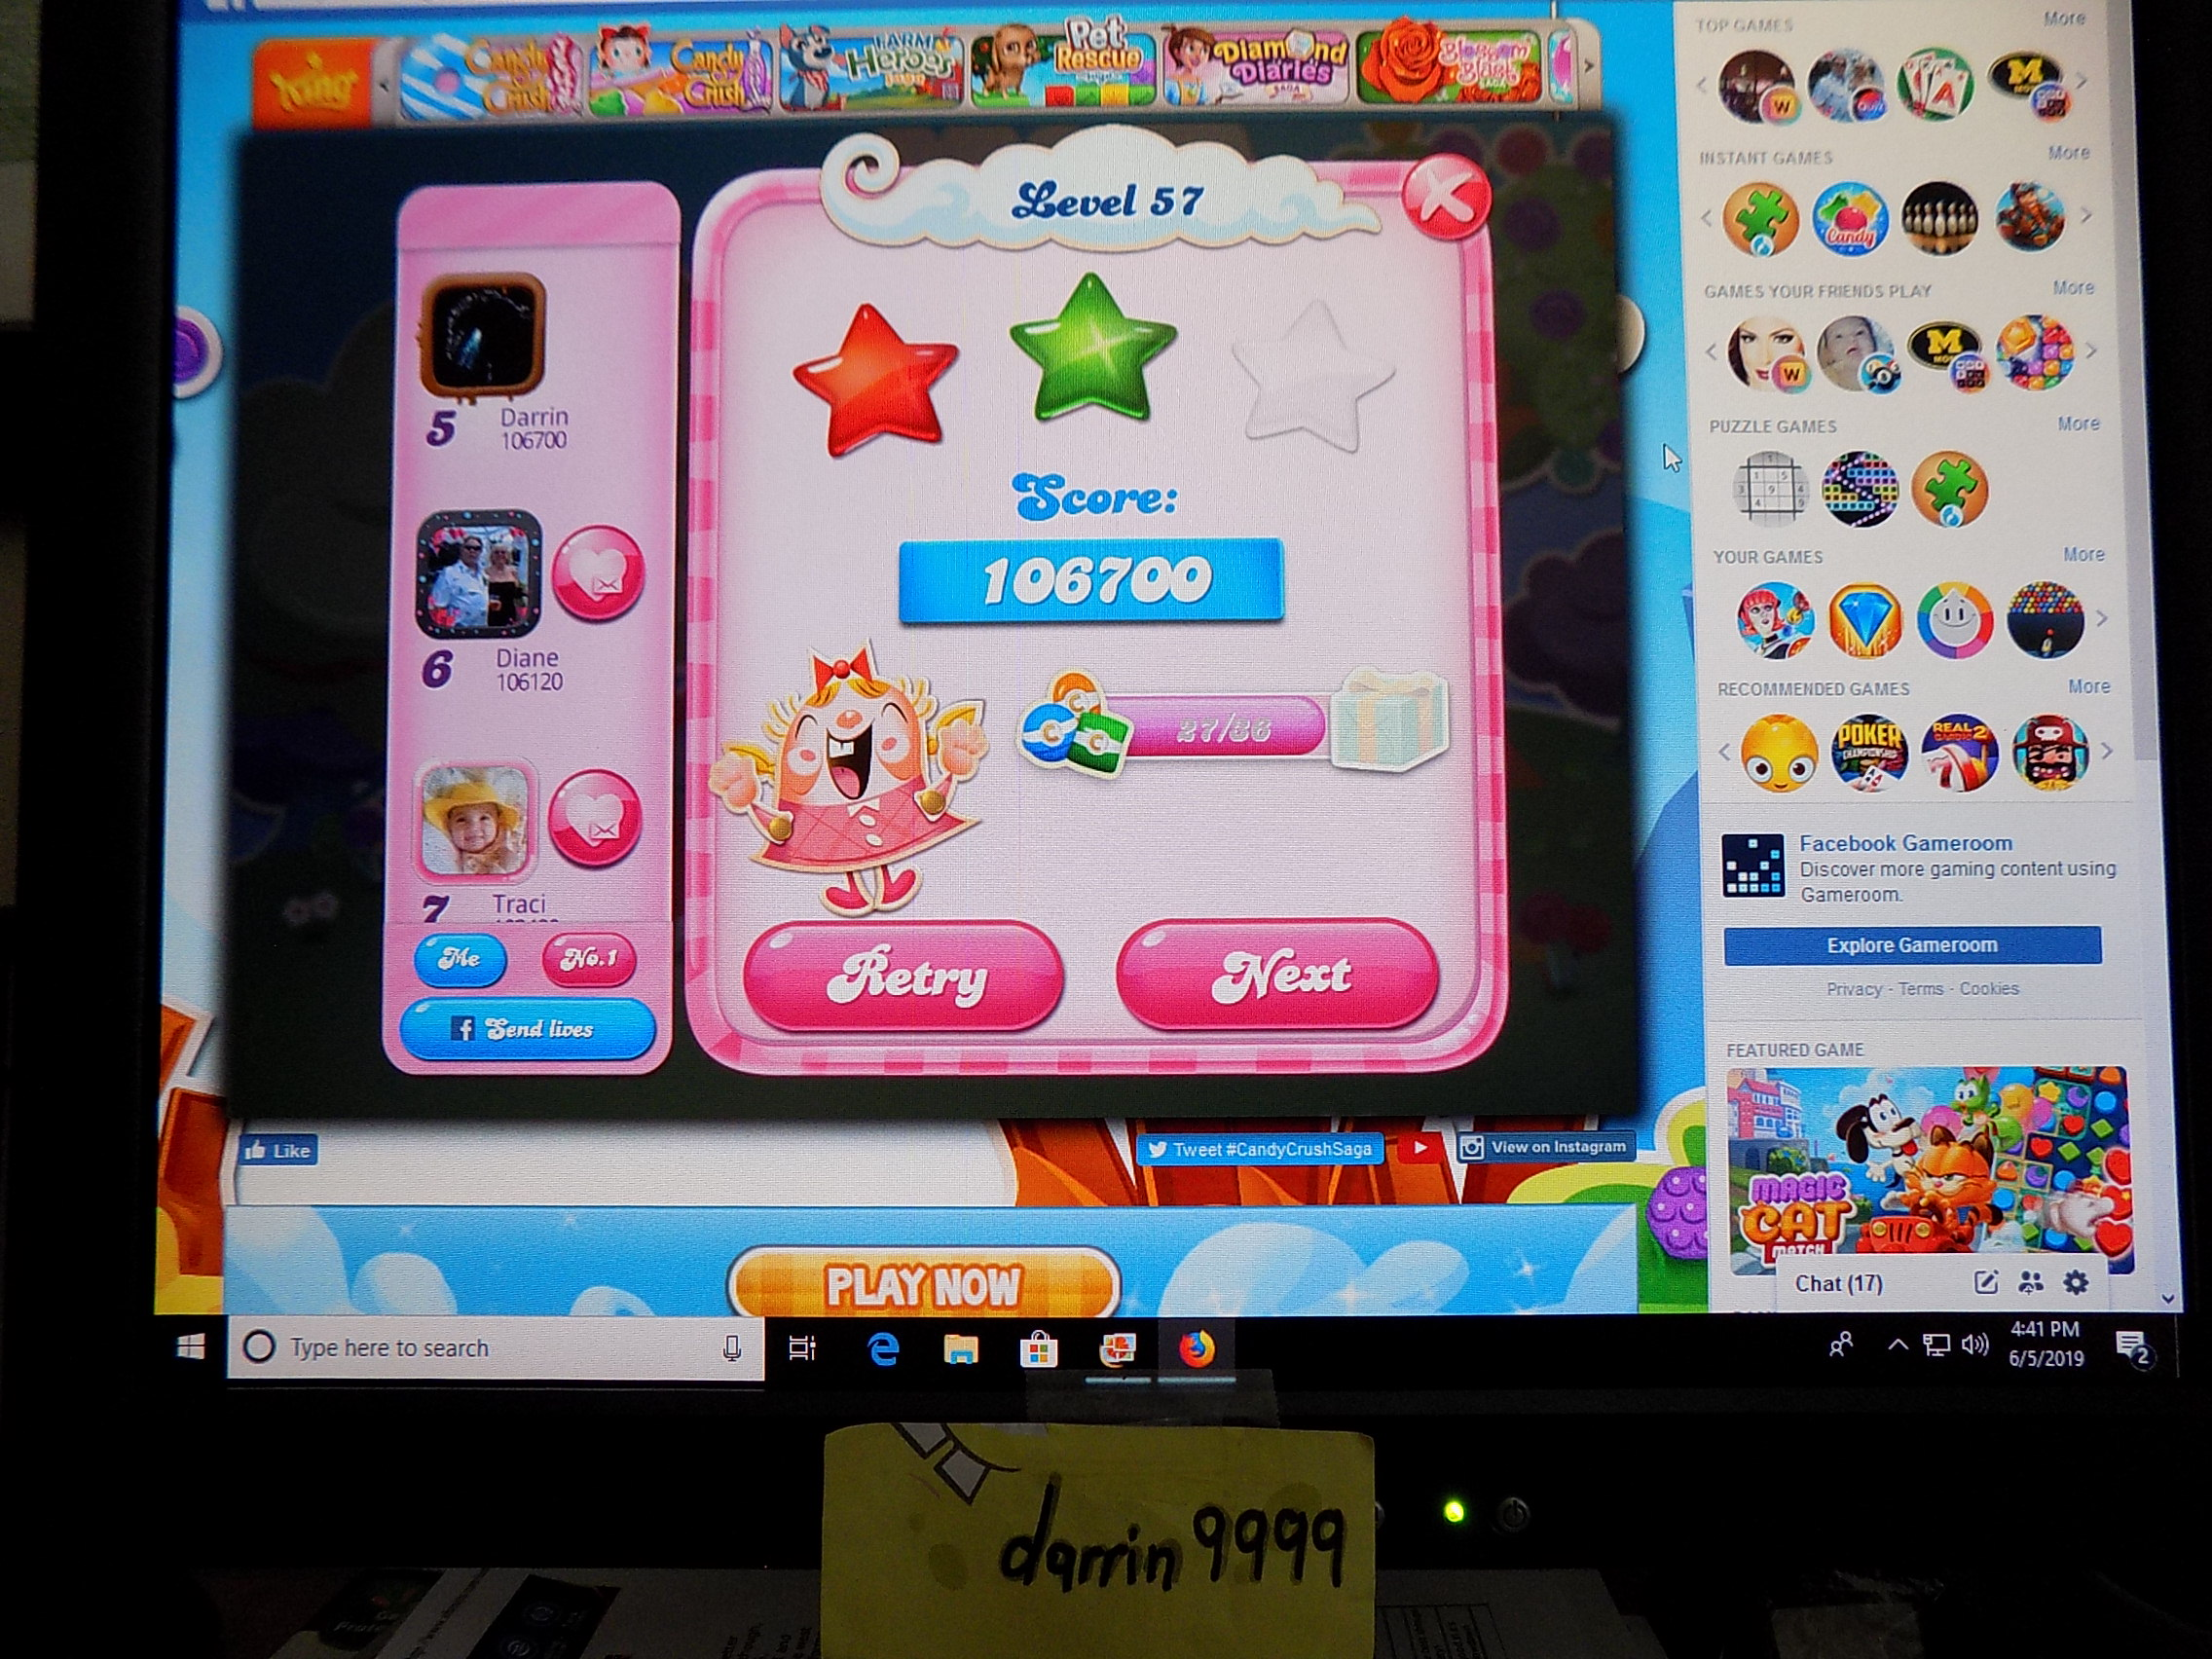 darrin9999: Candy Crush Saga: Level 057 (Web) 106,700 points on 2019-06-12 16:04:49